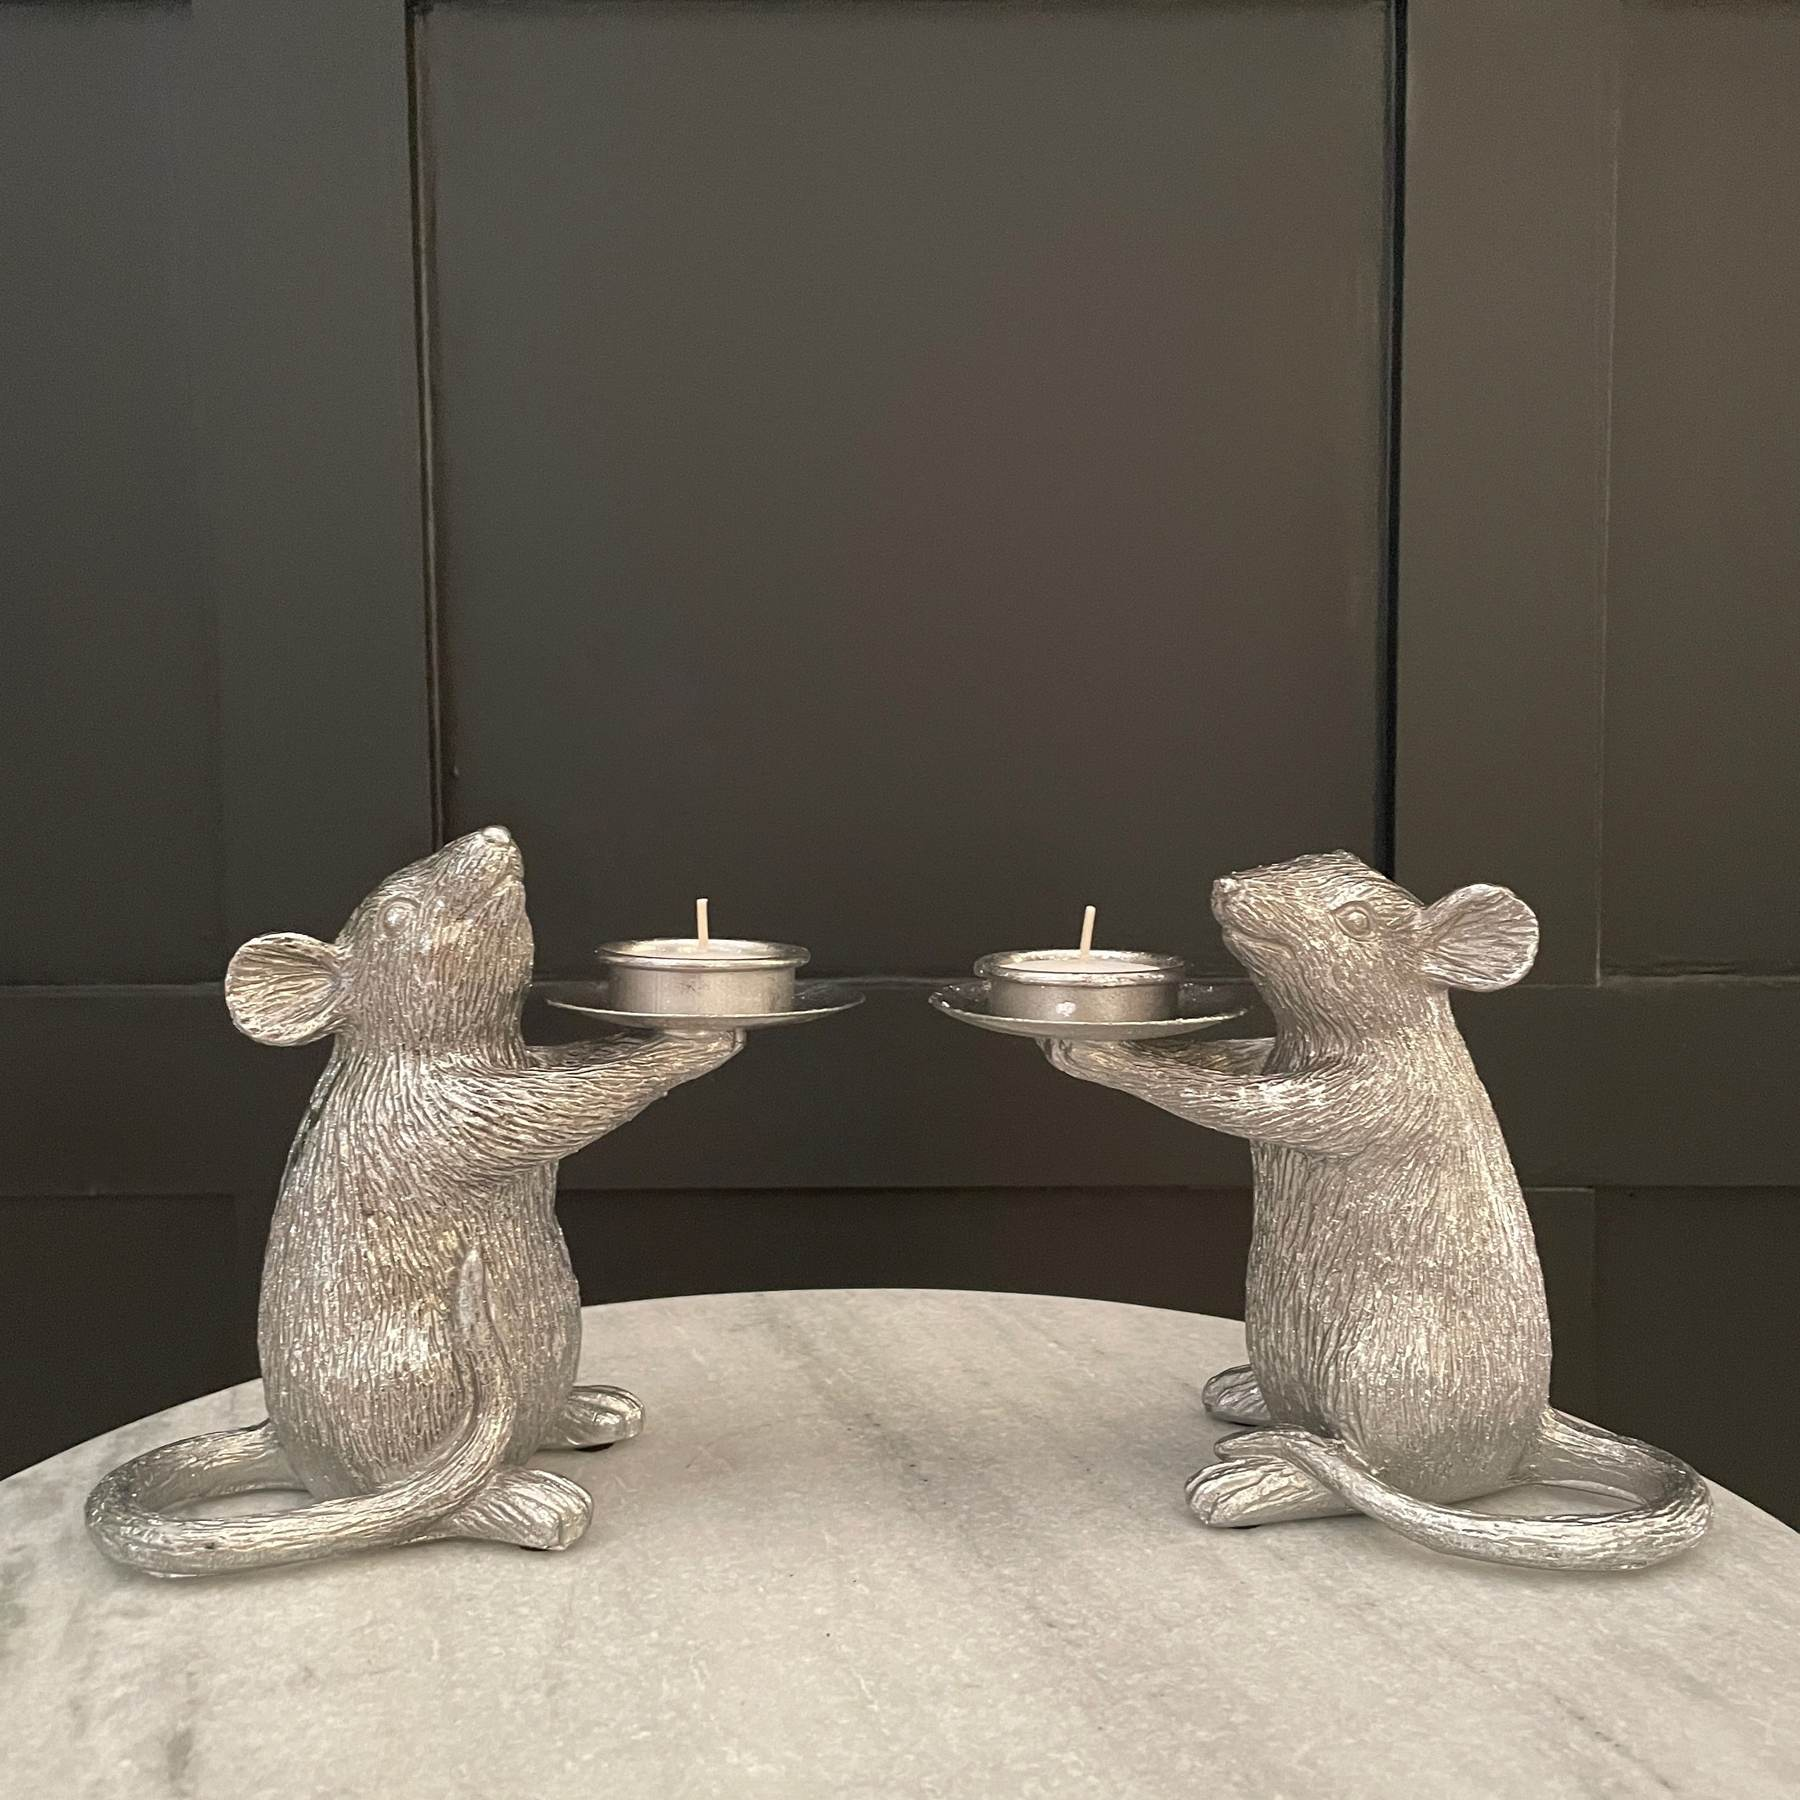 silver-mice-candles